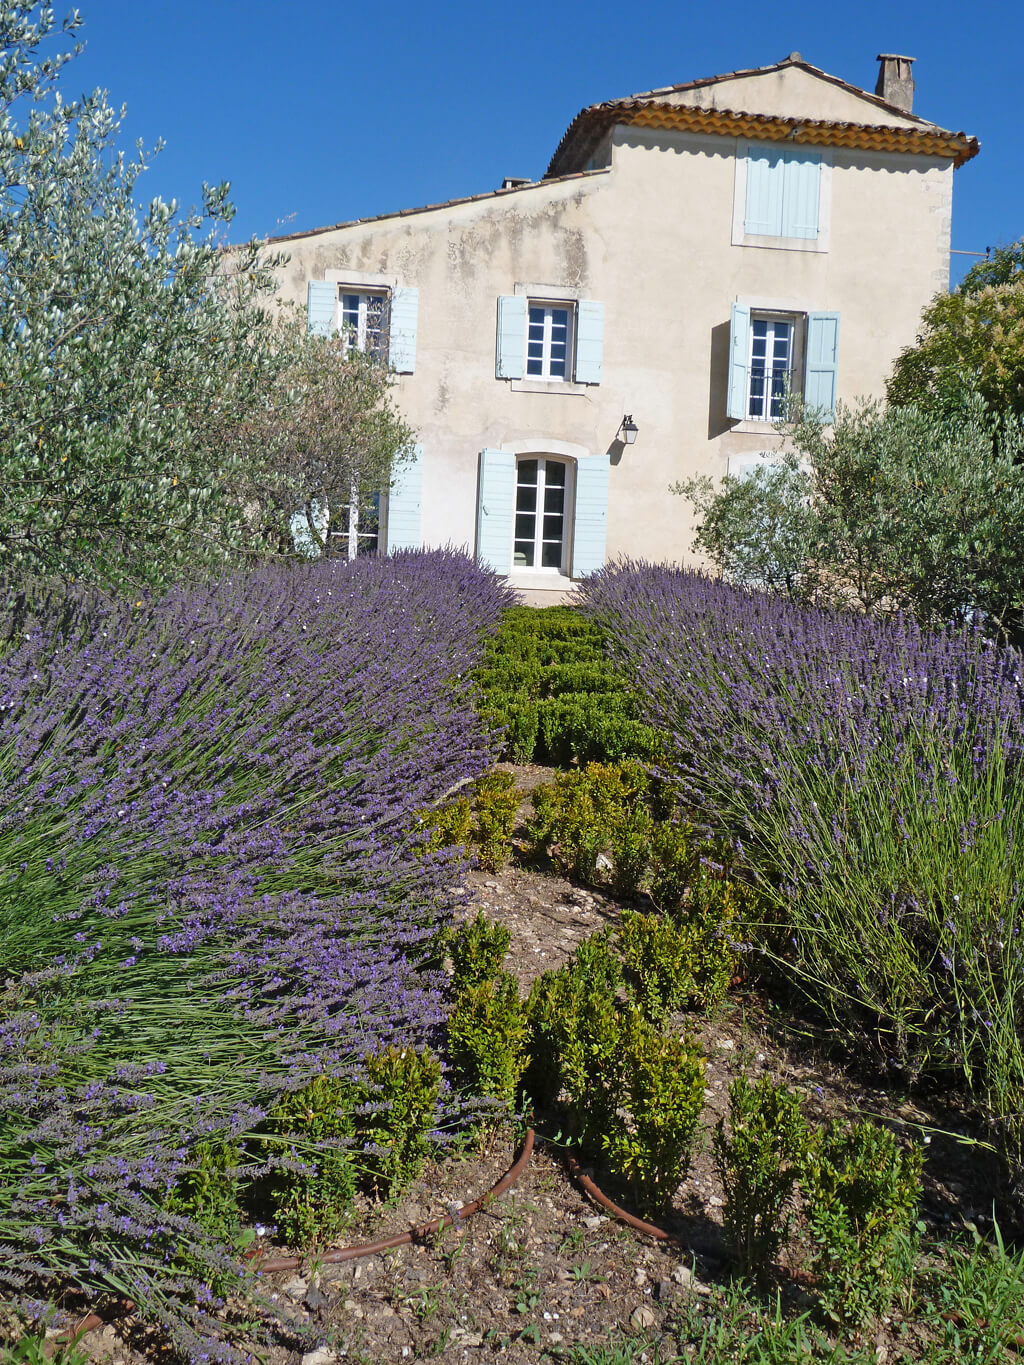 Beautiful French country house in Provence. Come tour Provence Villa St-Saturnin: Timeless & Tranquil Design...the interiors have authentic and classic French style and this luxury vacation rental can be booked through Haven In. #frenchcountry #houseinfrance #bastide #frenchfarmhouse #housetour #provence #provencal #havenin #europeancountry